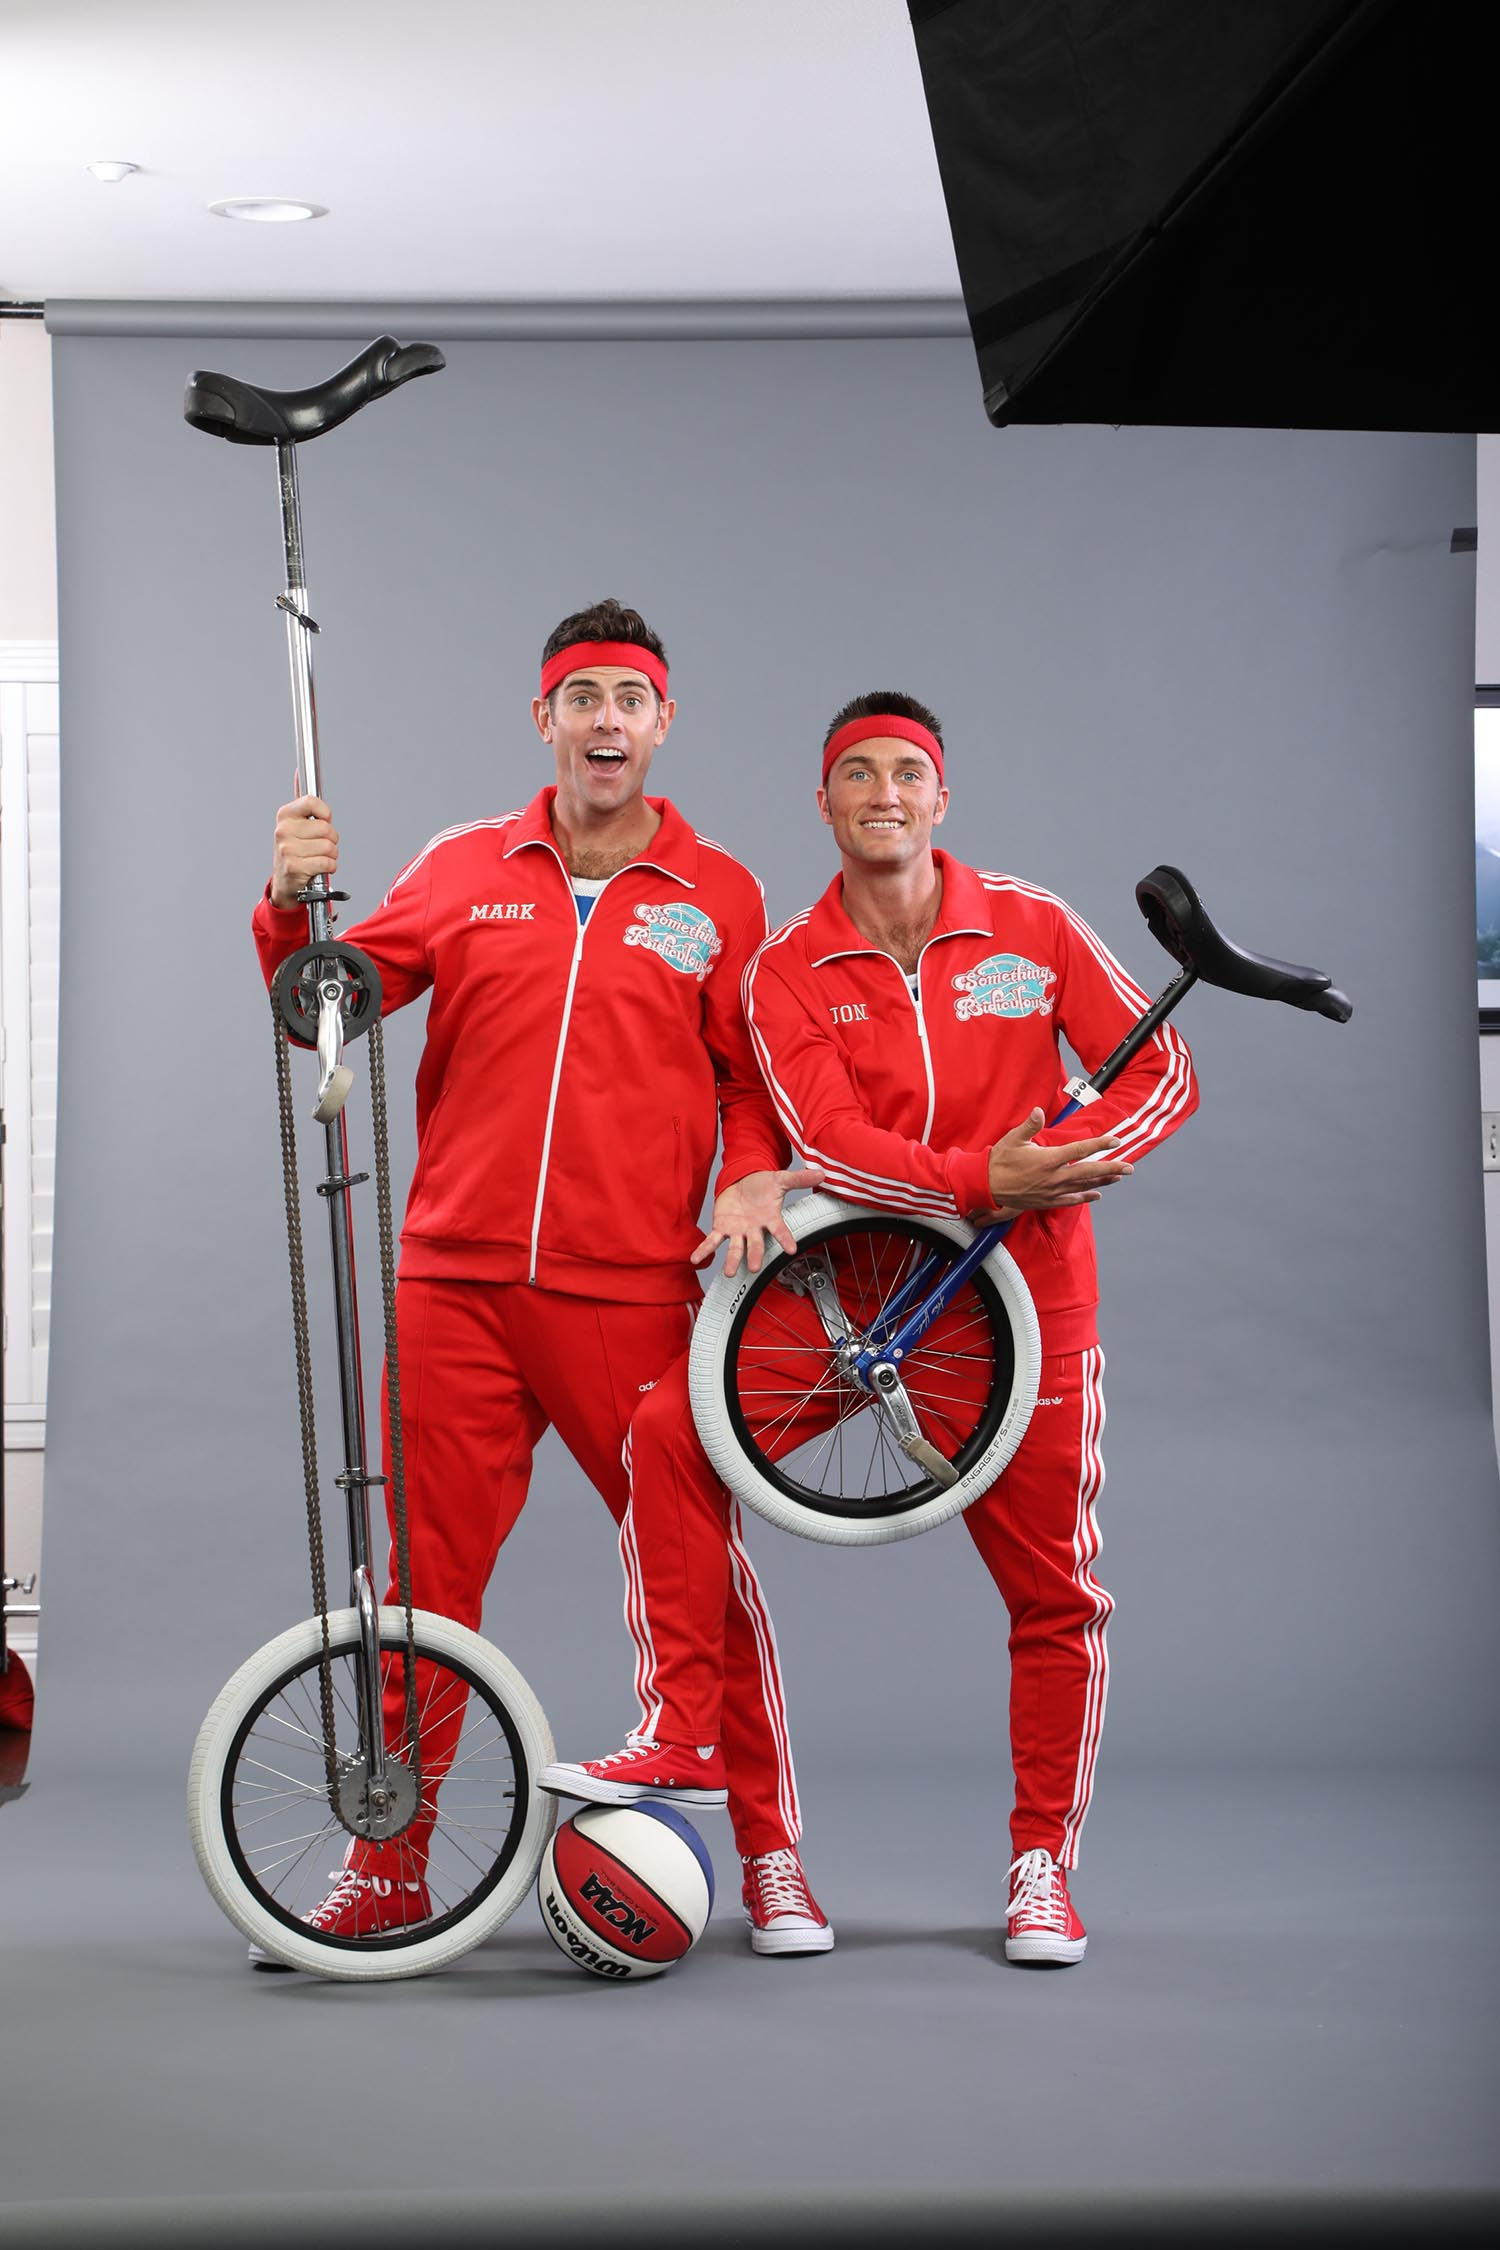 Jon and Mark in red jumpsuits with unicycles